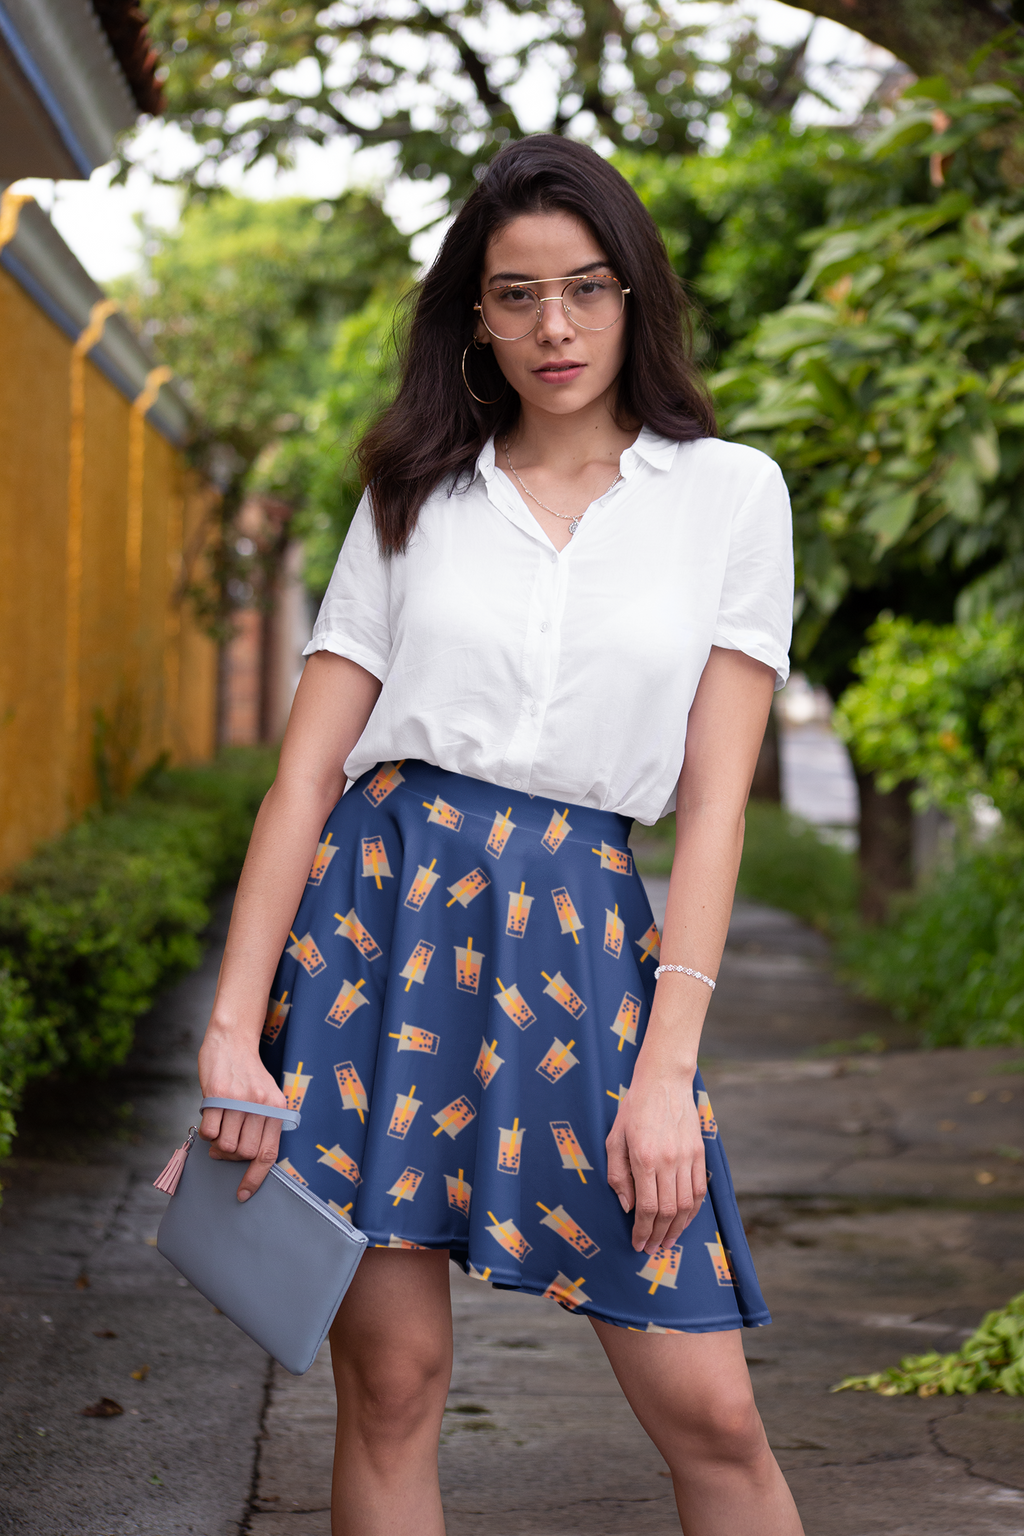 Fashionable woman wearing a boba skirt